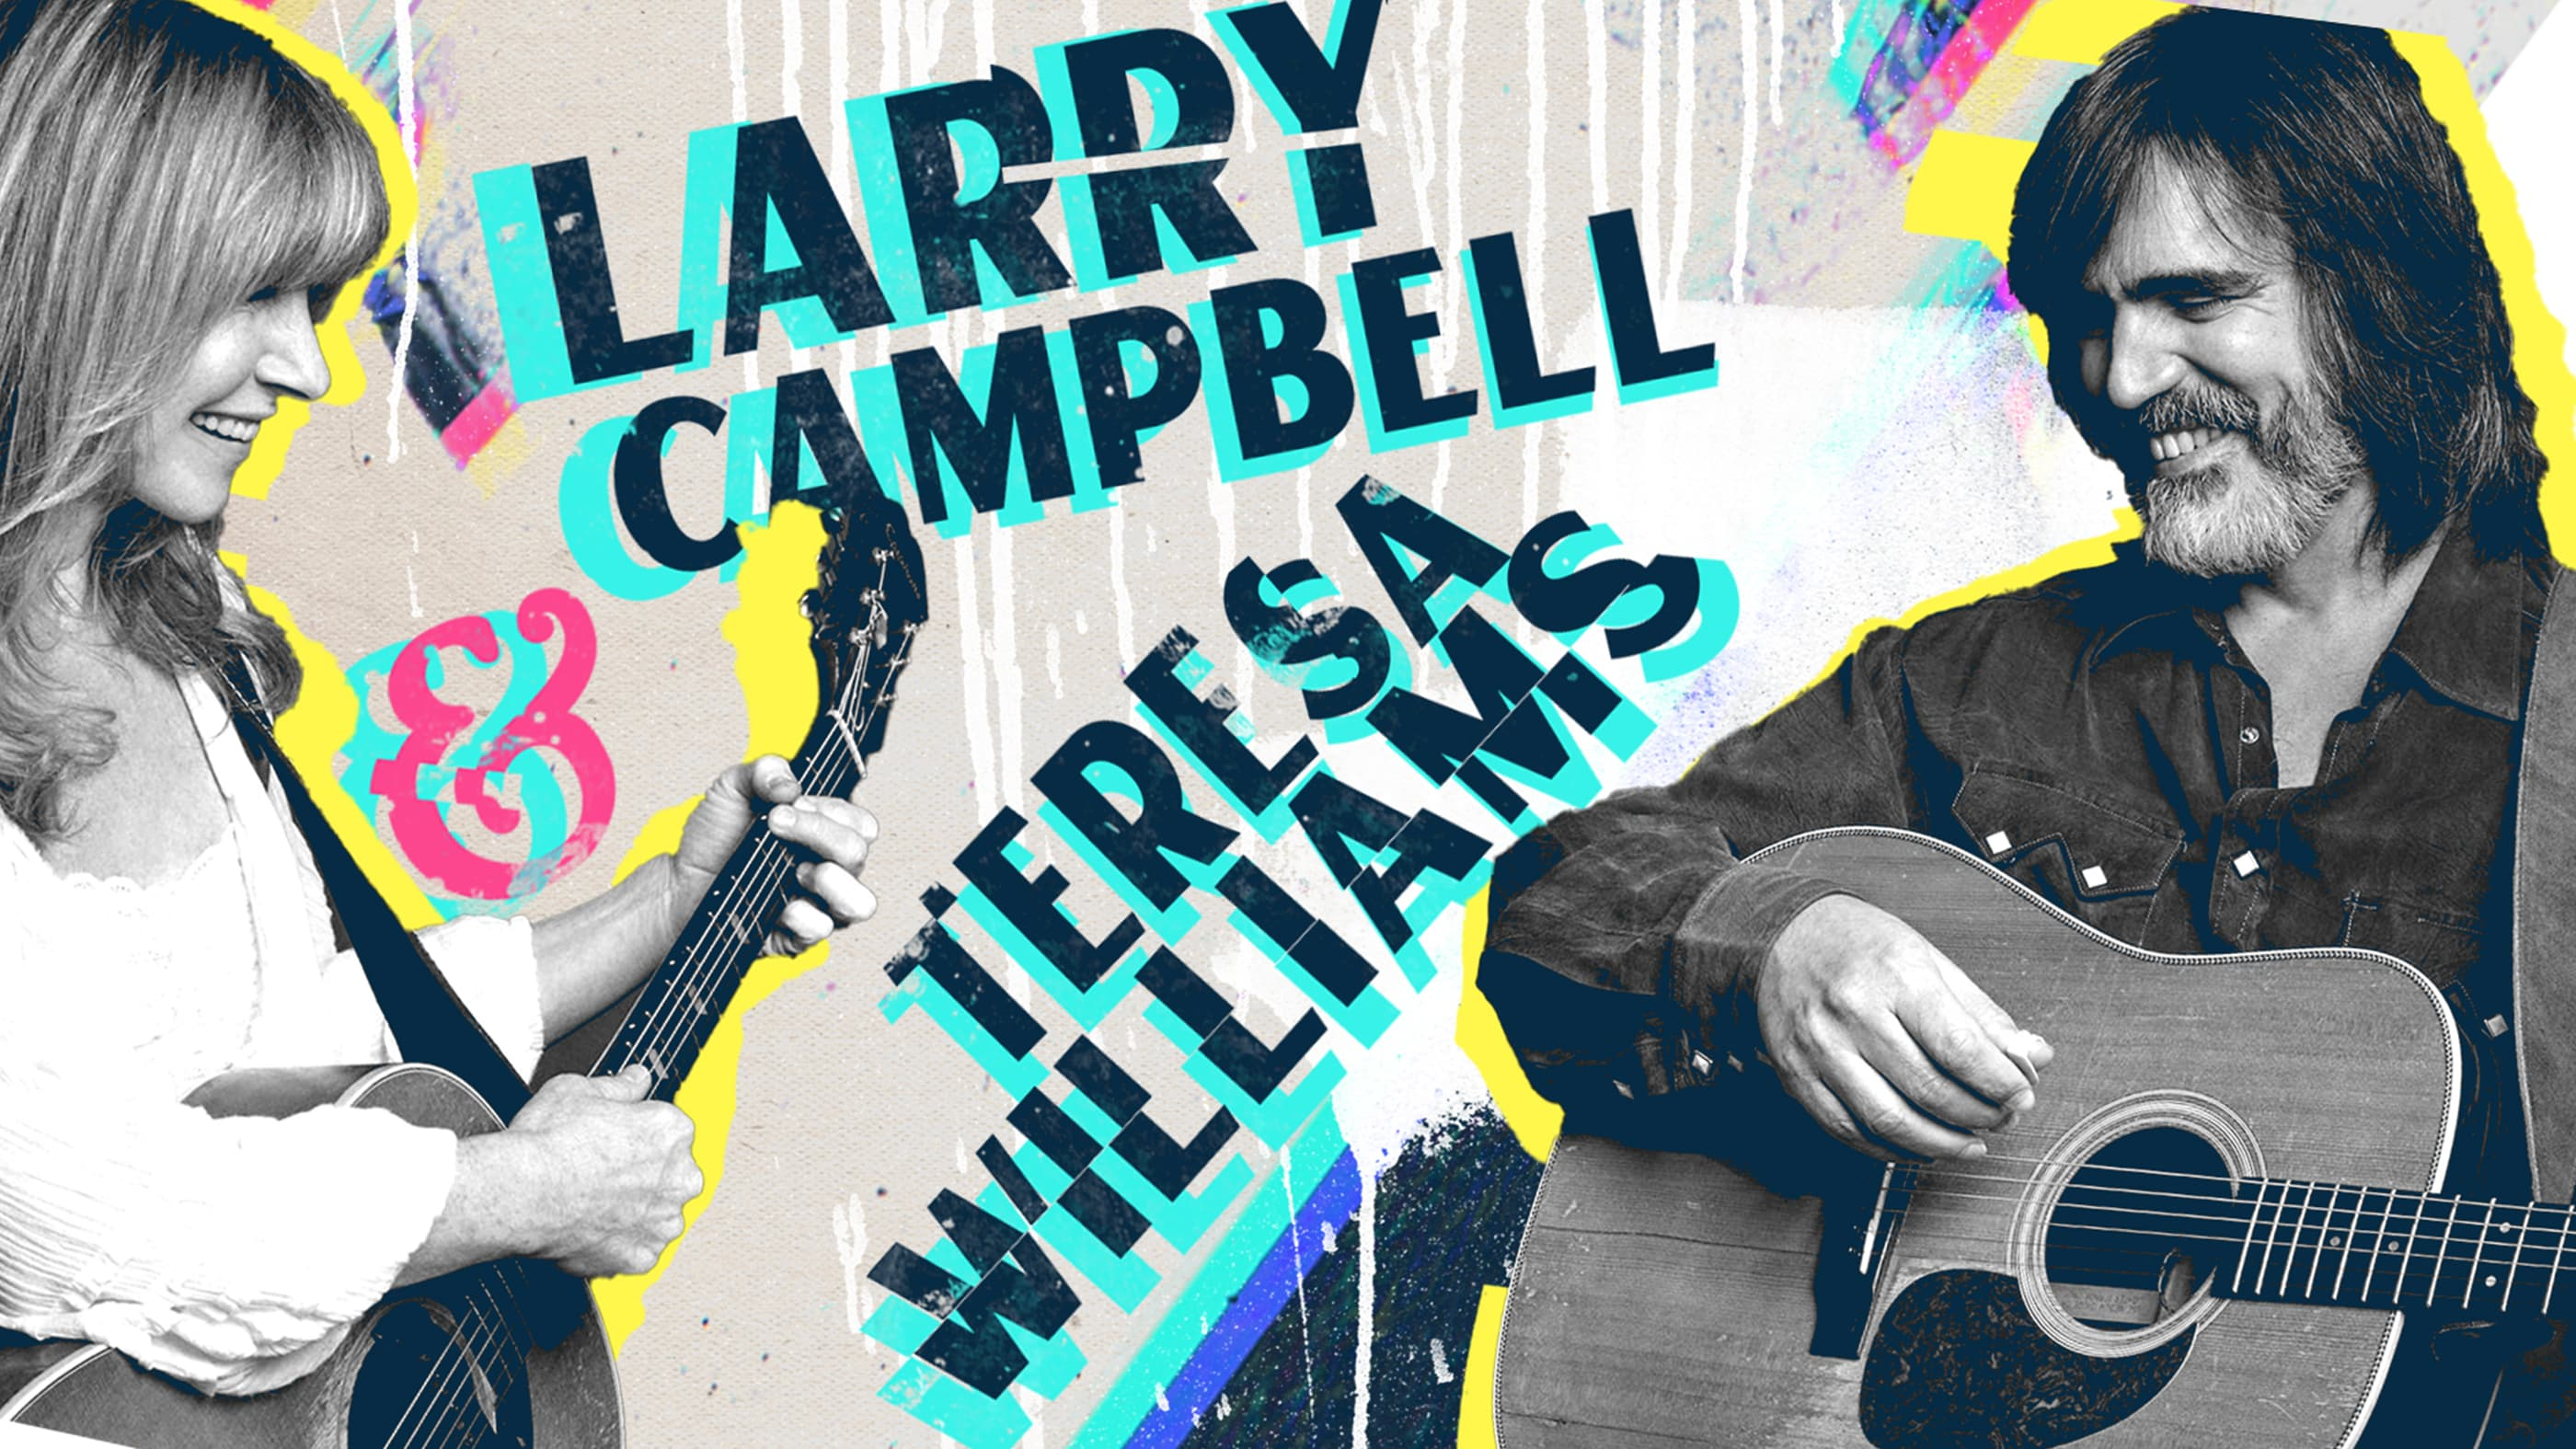 Larry Campbell NYGF